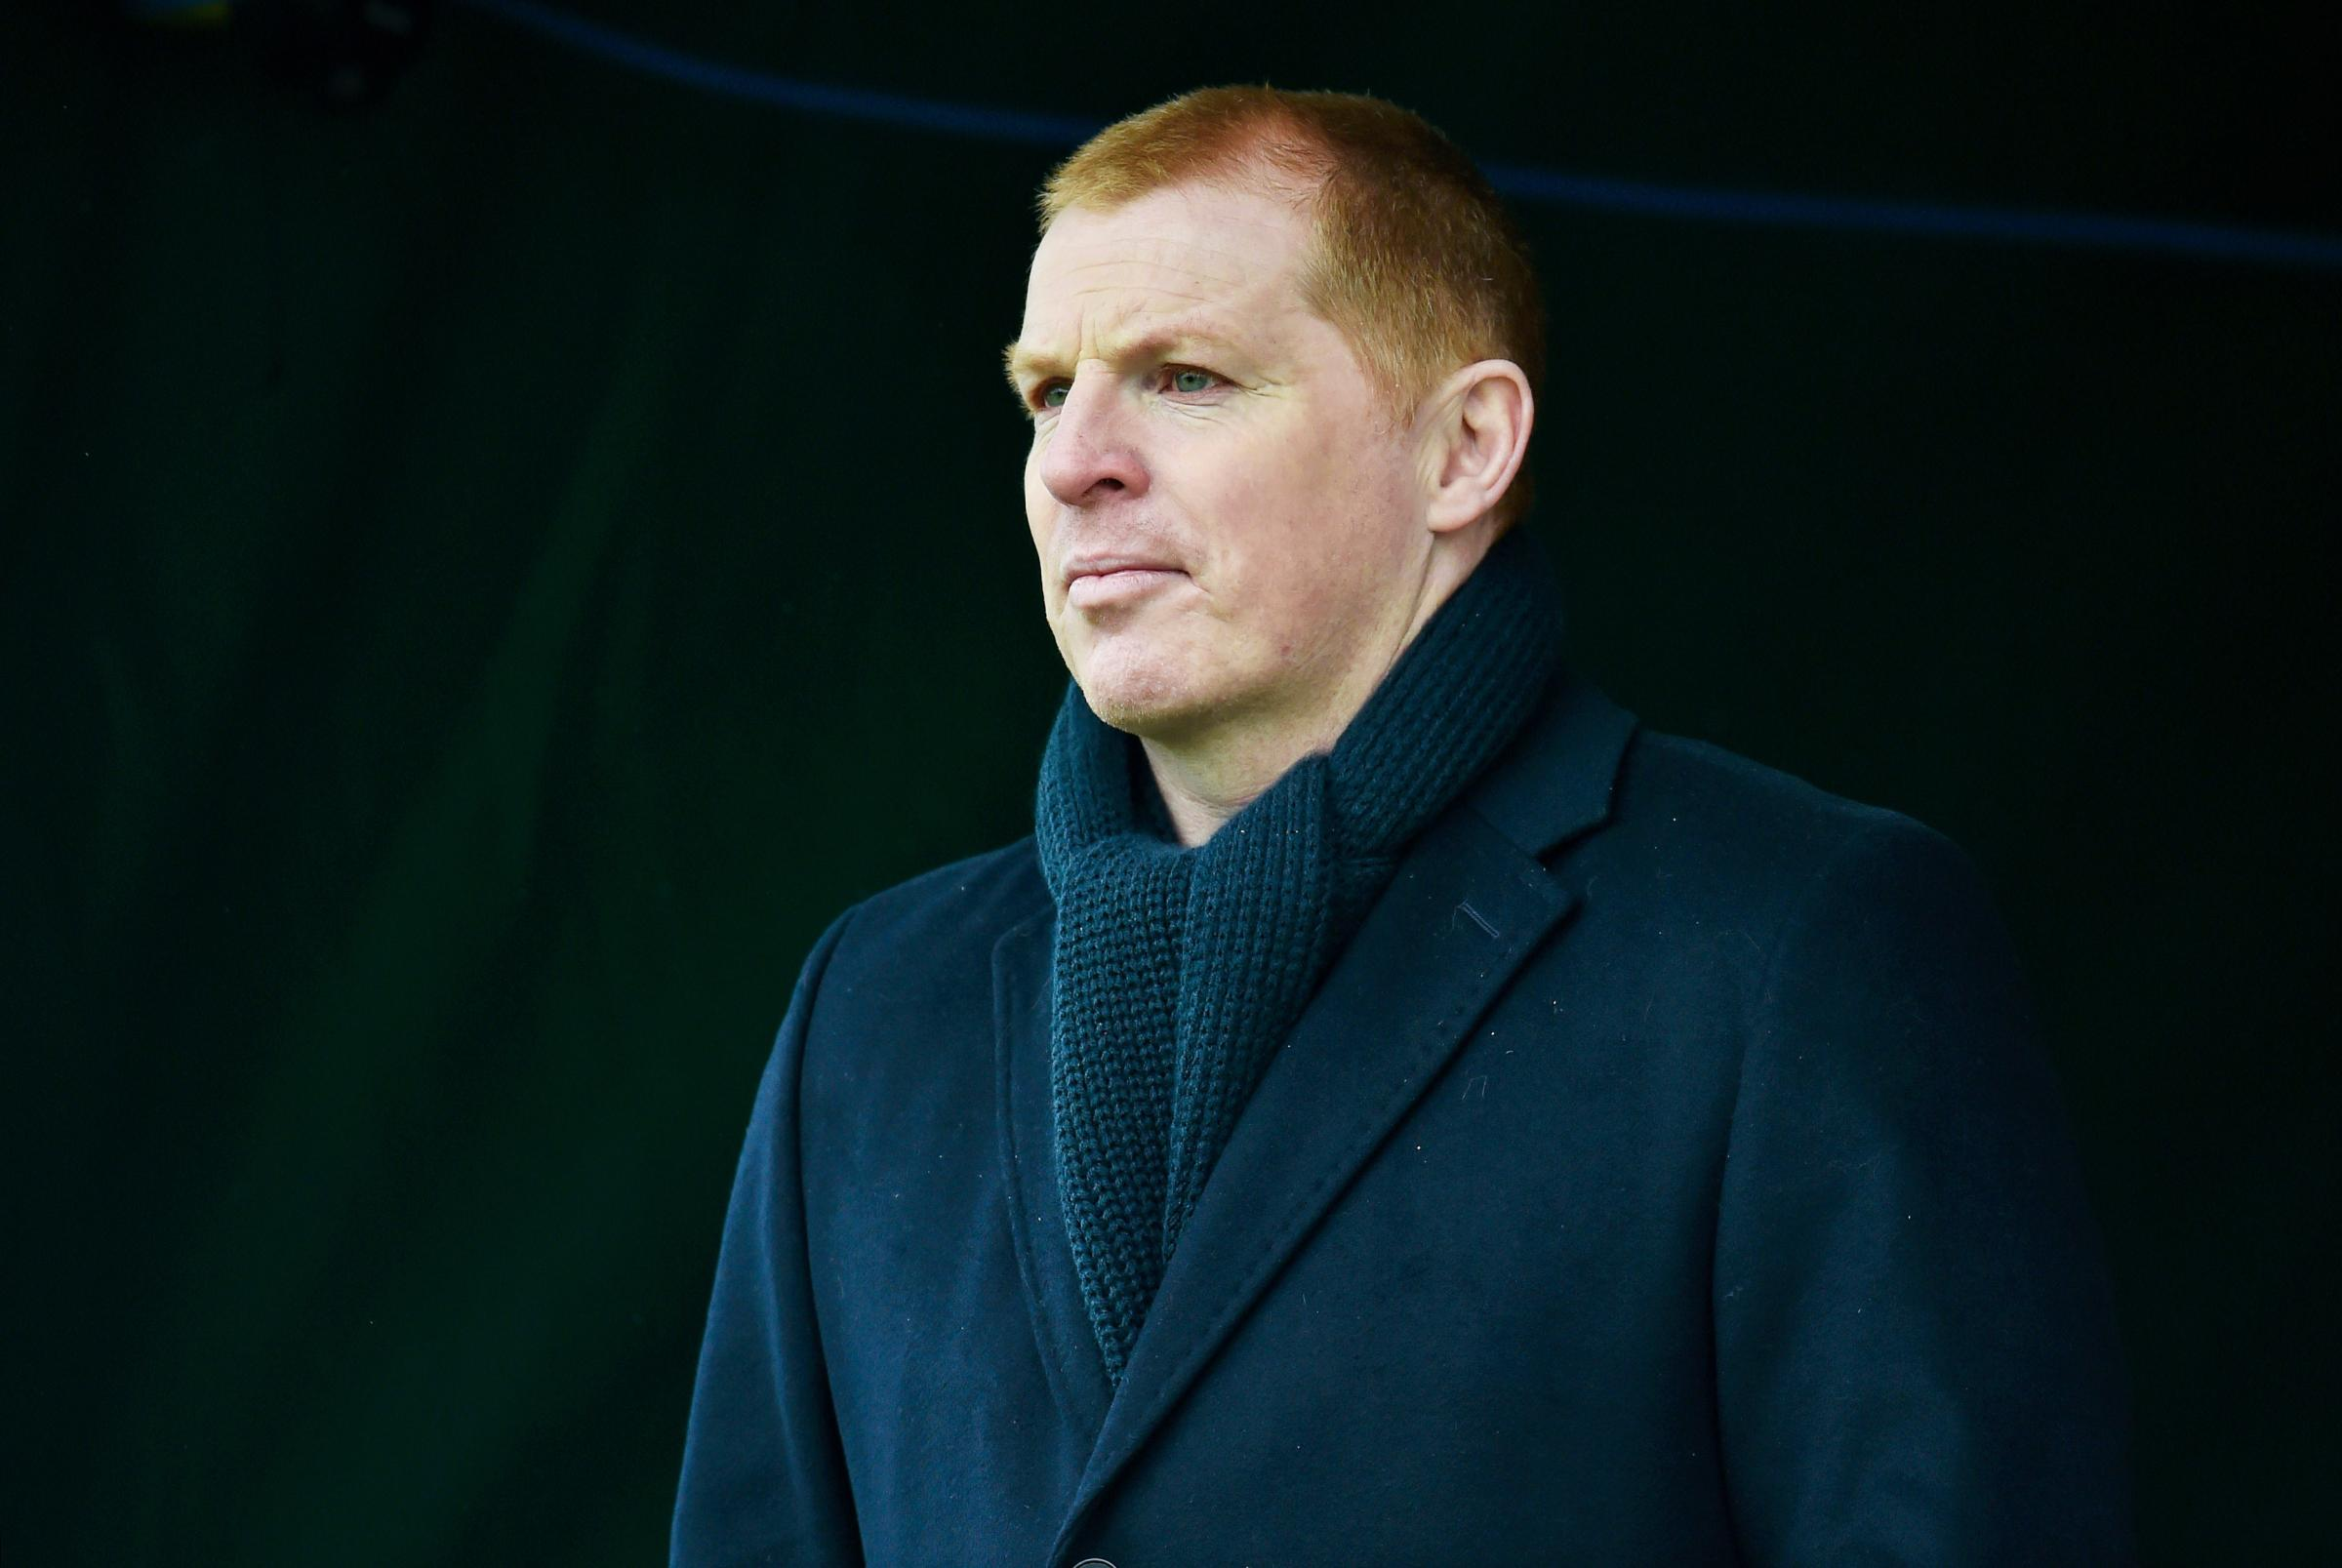 Hibernian manager Neil Lennon could succeed Brendan Rodgers and return to Celtic, says Chris Sutton